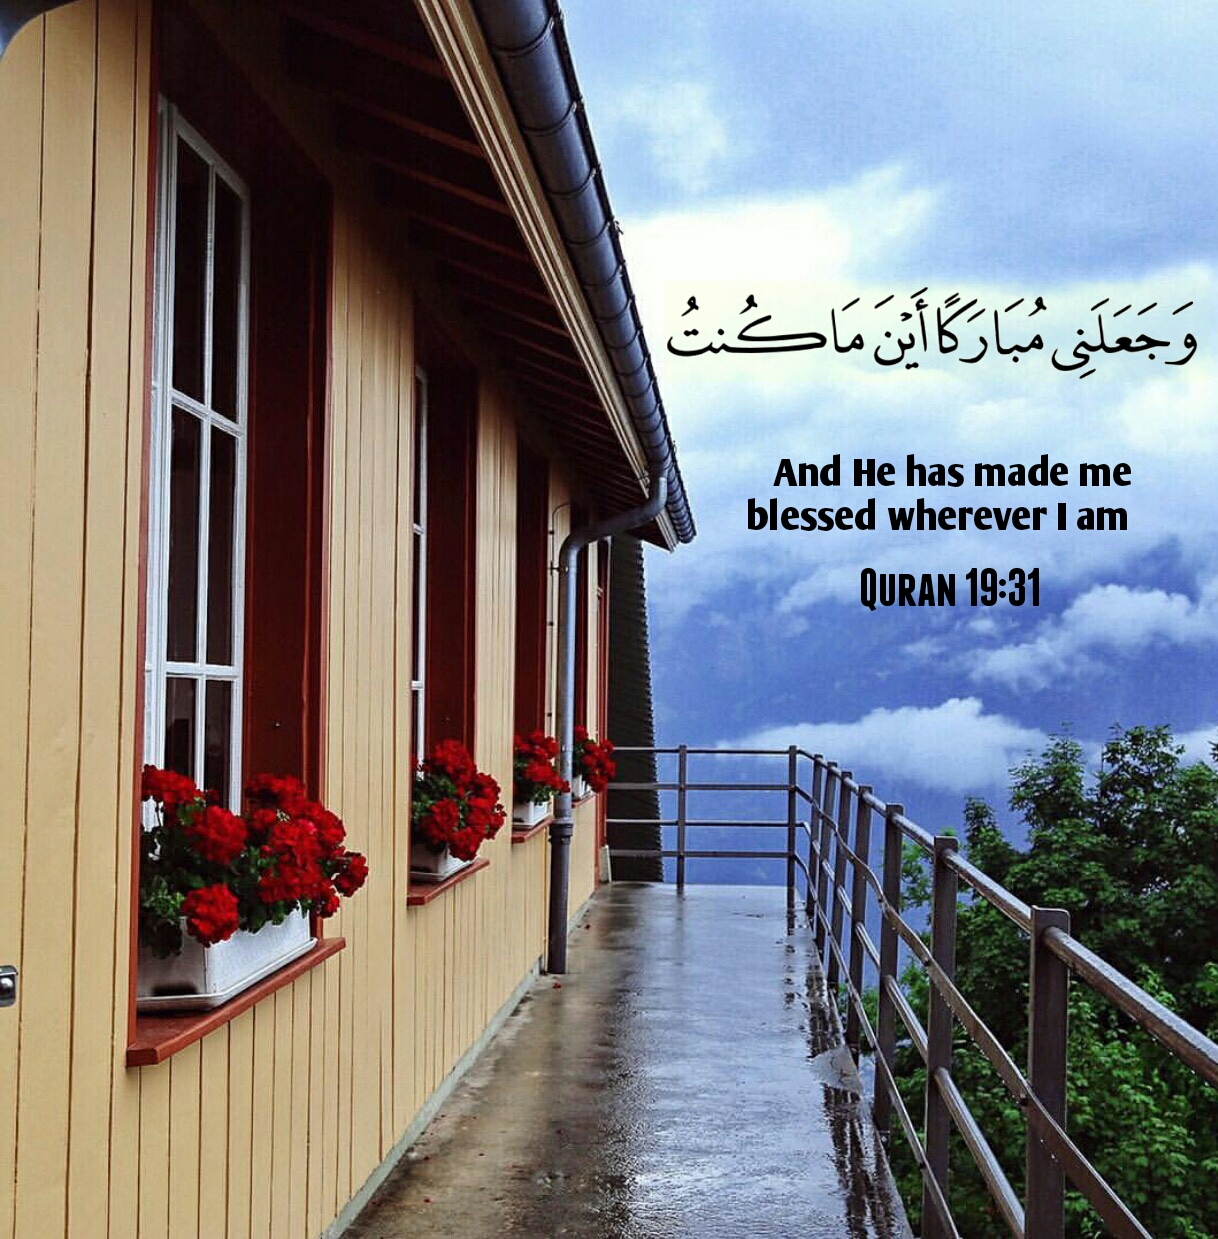 Quran Quotes - And He has made me blessed wherever I am | Quran 19:31